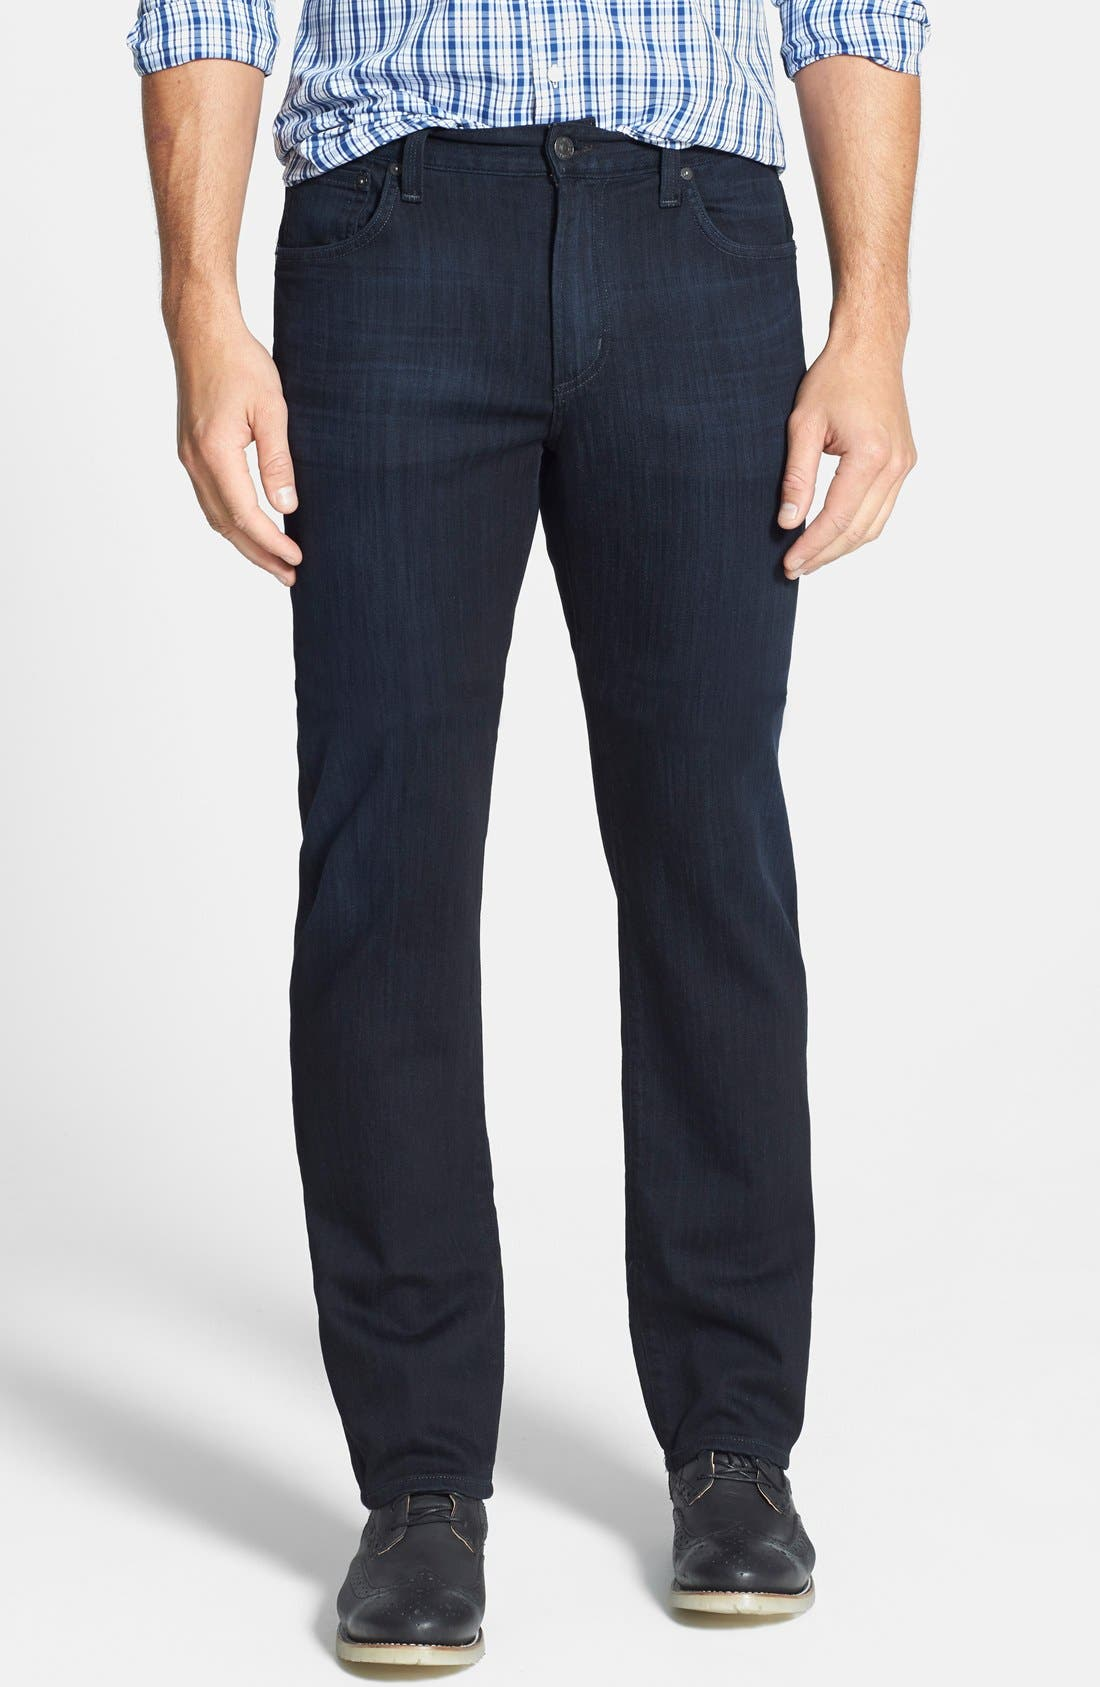 Alternate Image 1 Selected - Citizens of Humanity Sid Classic Straight Leg Jeans (Reese)